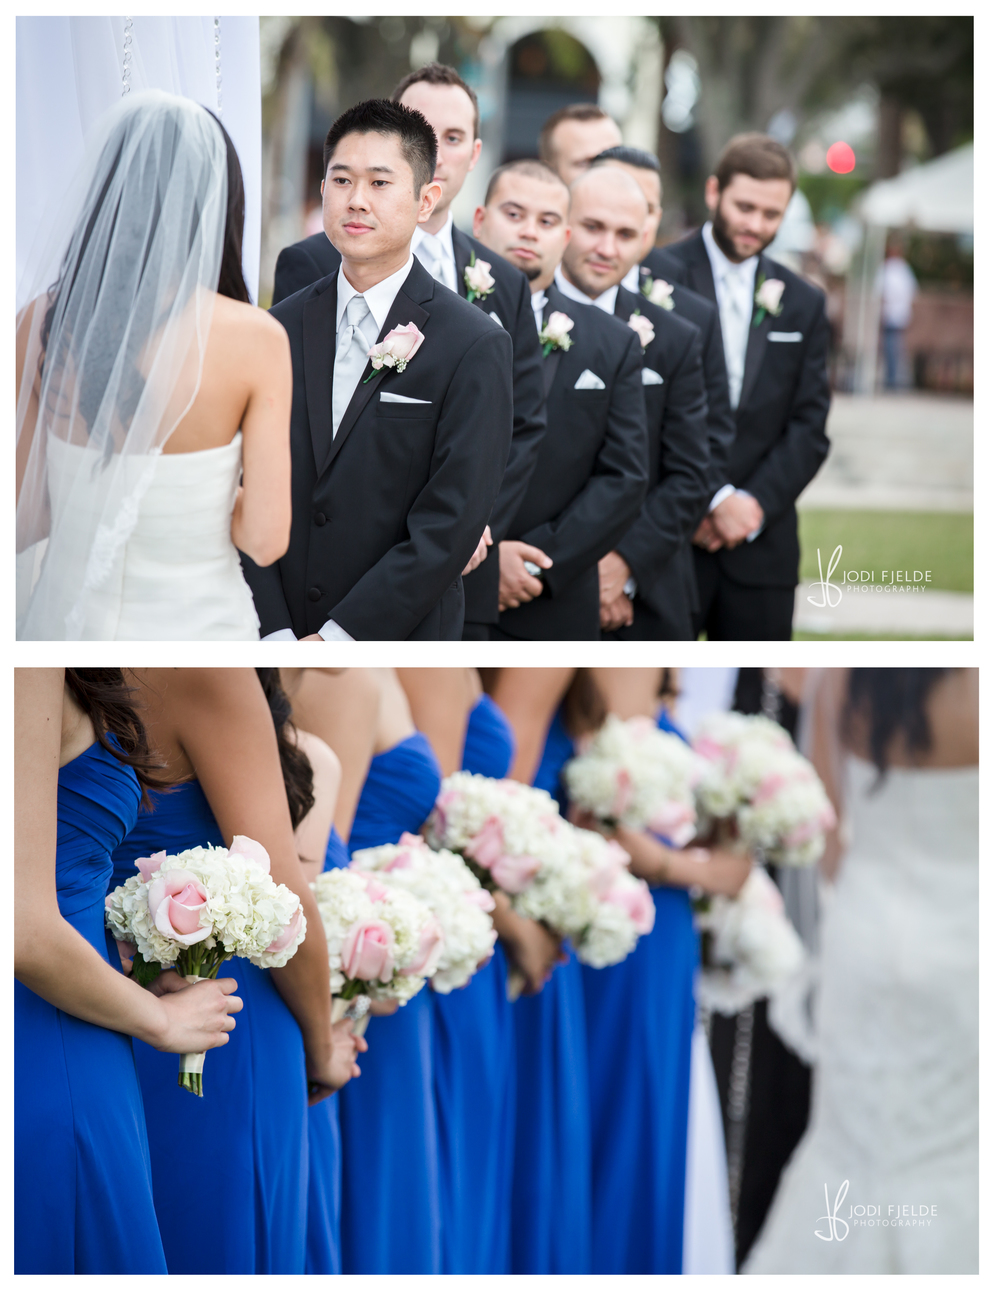 Lake_Pavilion_Wedding_West_Palm_Beach_Jodi_Fjelde_Photography_Betty_Alex_Sociaety_Of_Four _Arts_16.jpg